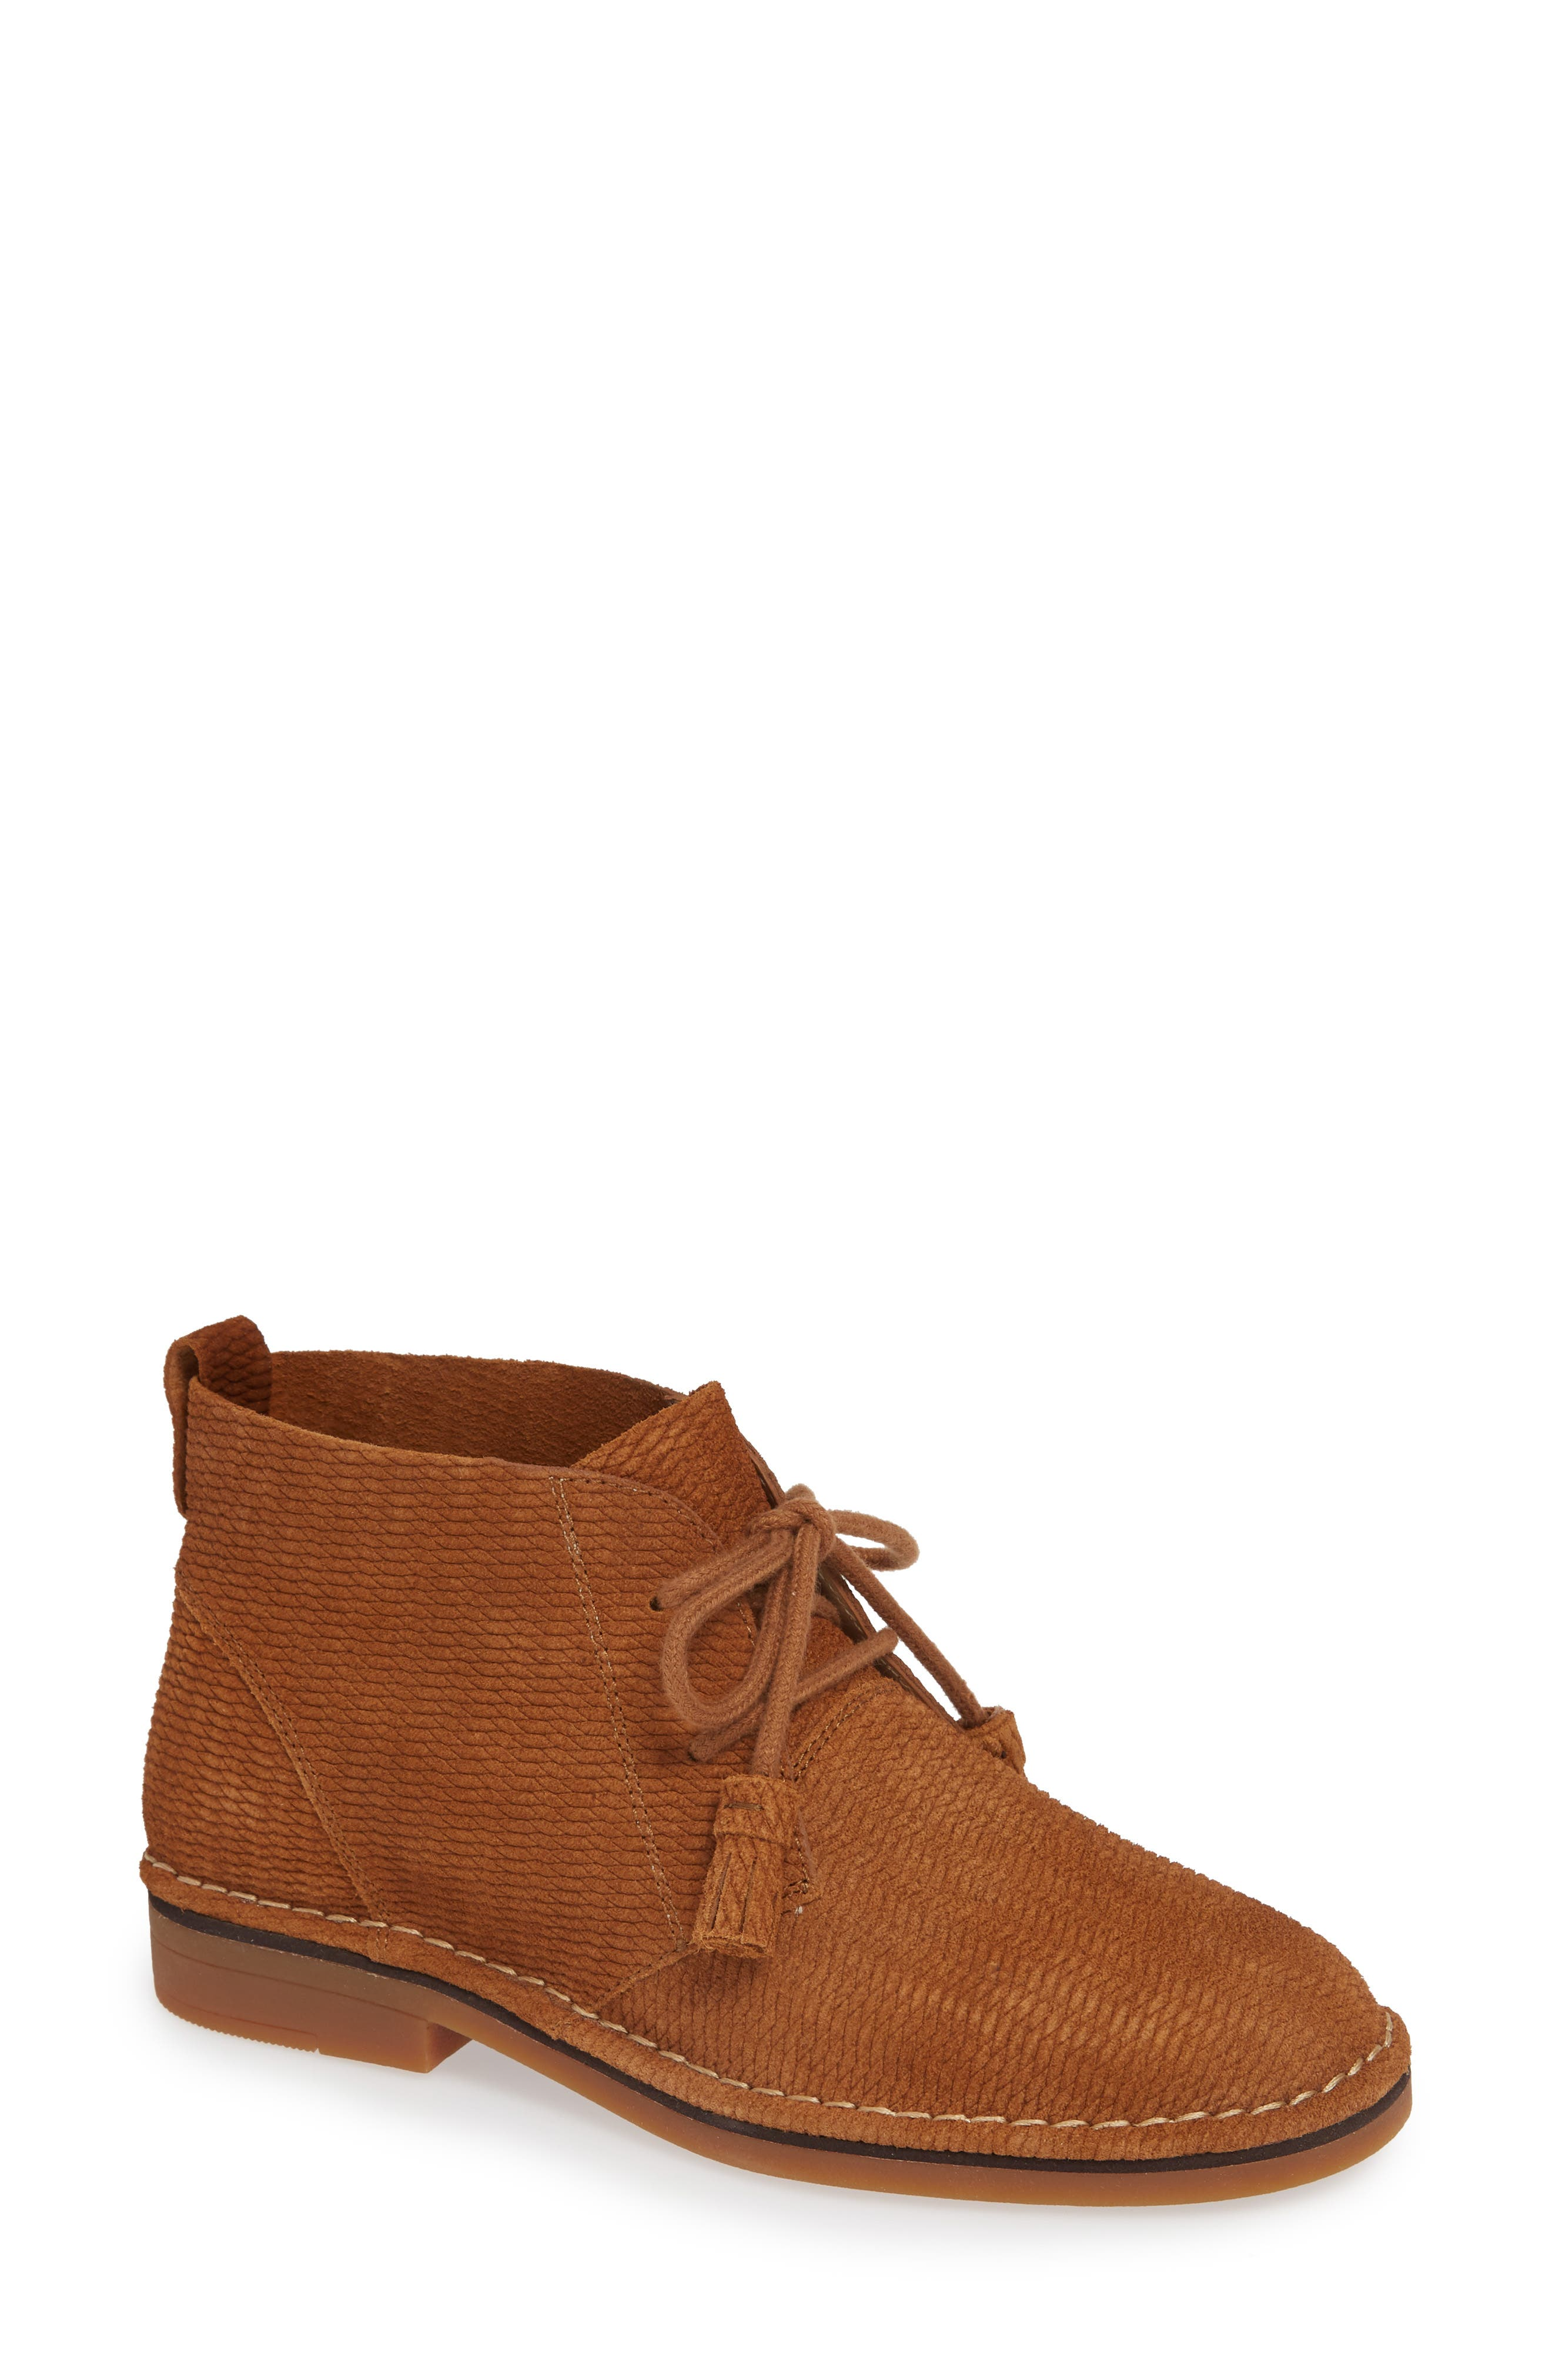 Hush Puppies Cyra Catelyn Chukka Boot- Brown